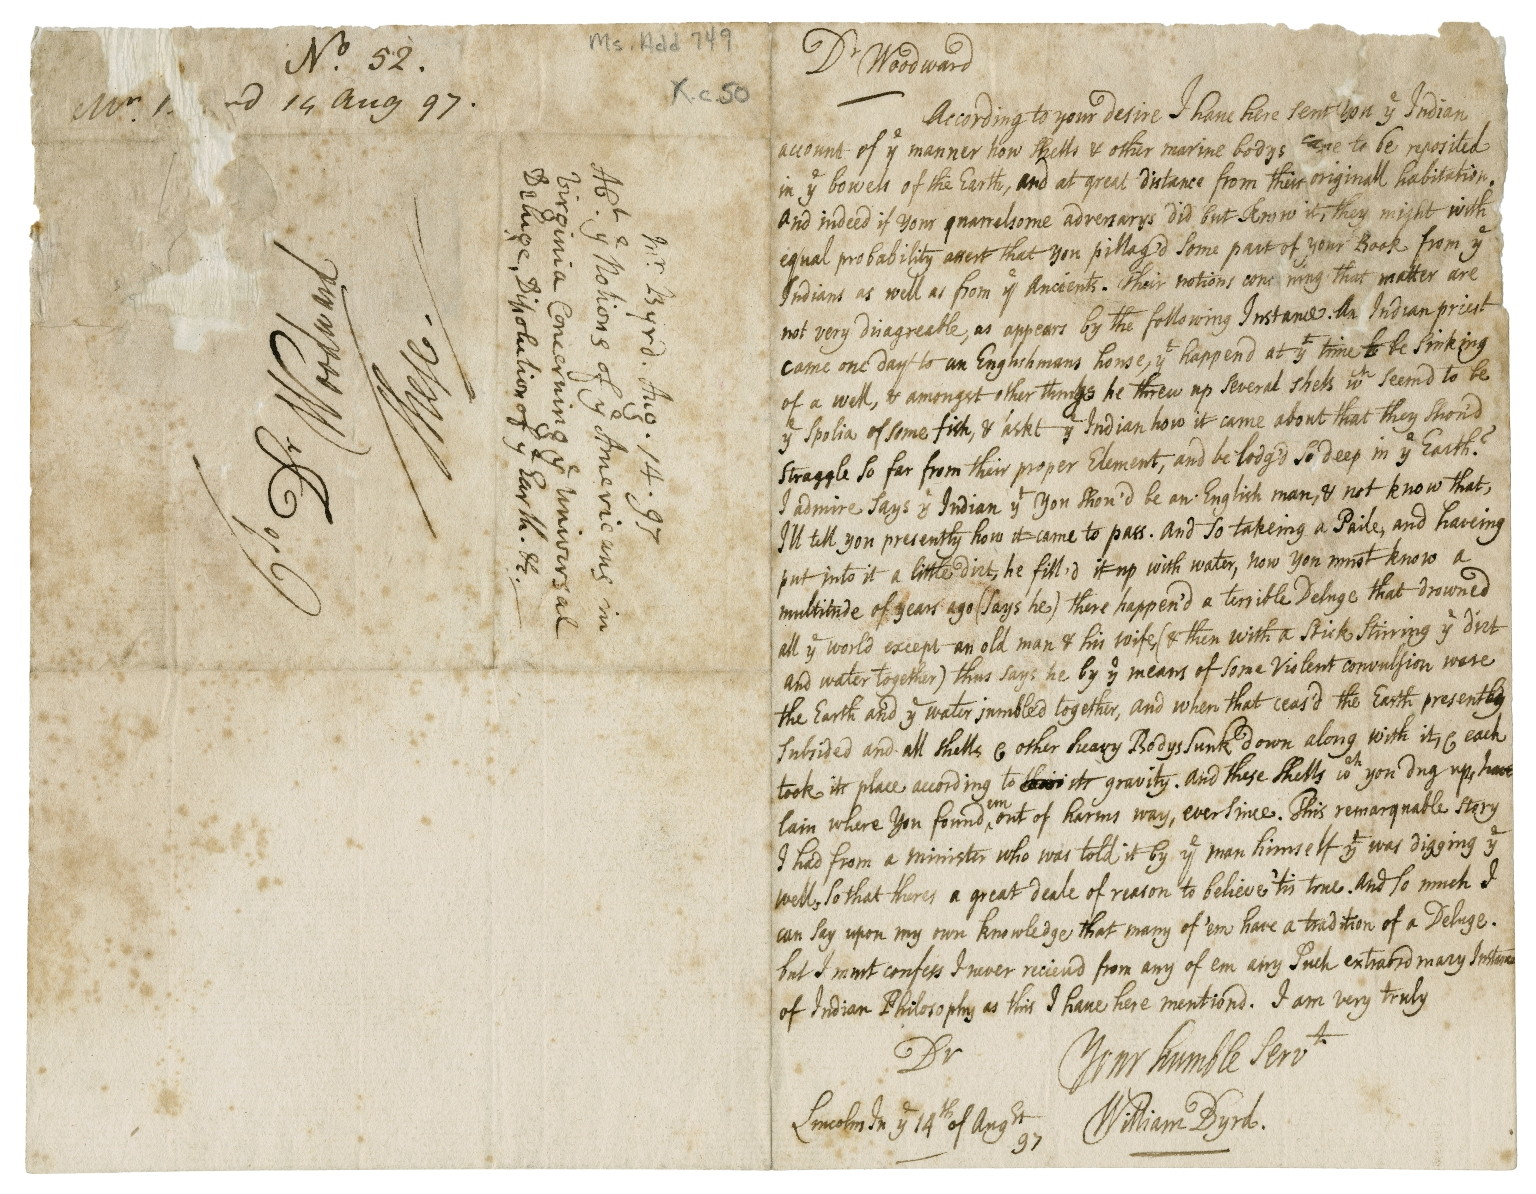 Autograph letter signed from William Byrd, Lincoln�s Inn, London, to Dr. [John] Woodward